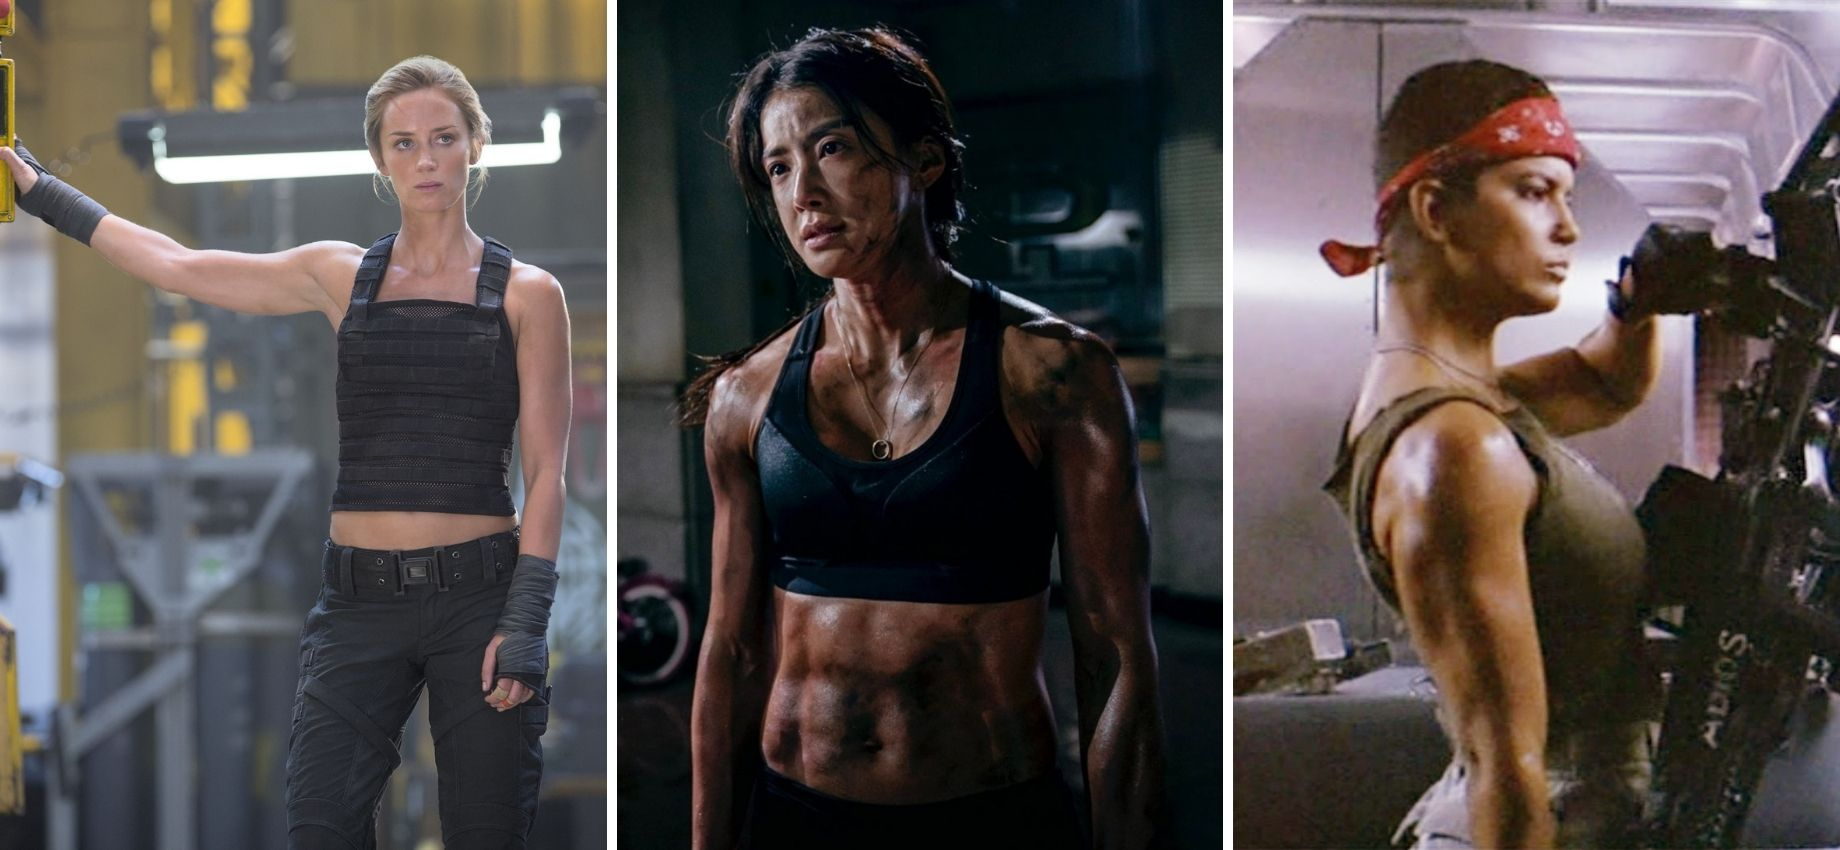 5 Actresses Who Made Us Swoon with Their Buff Arms